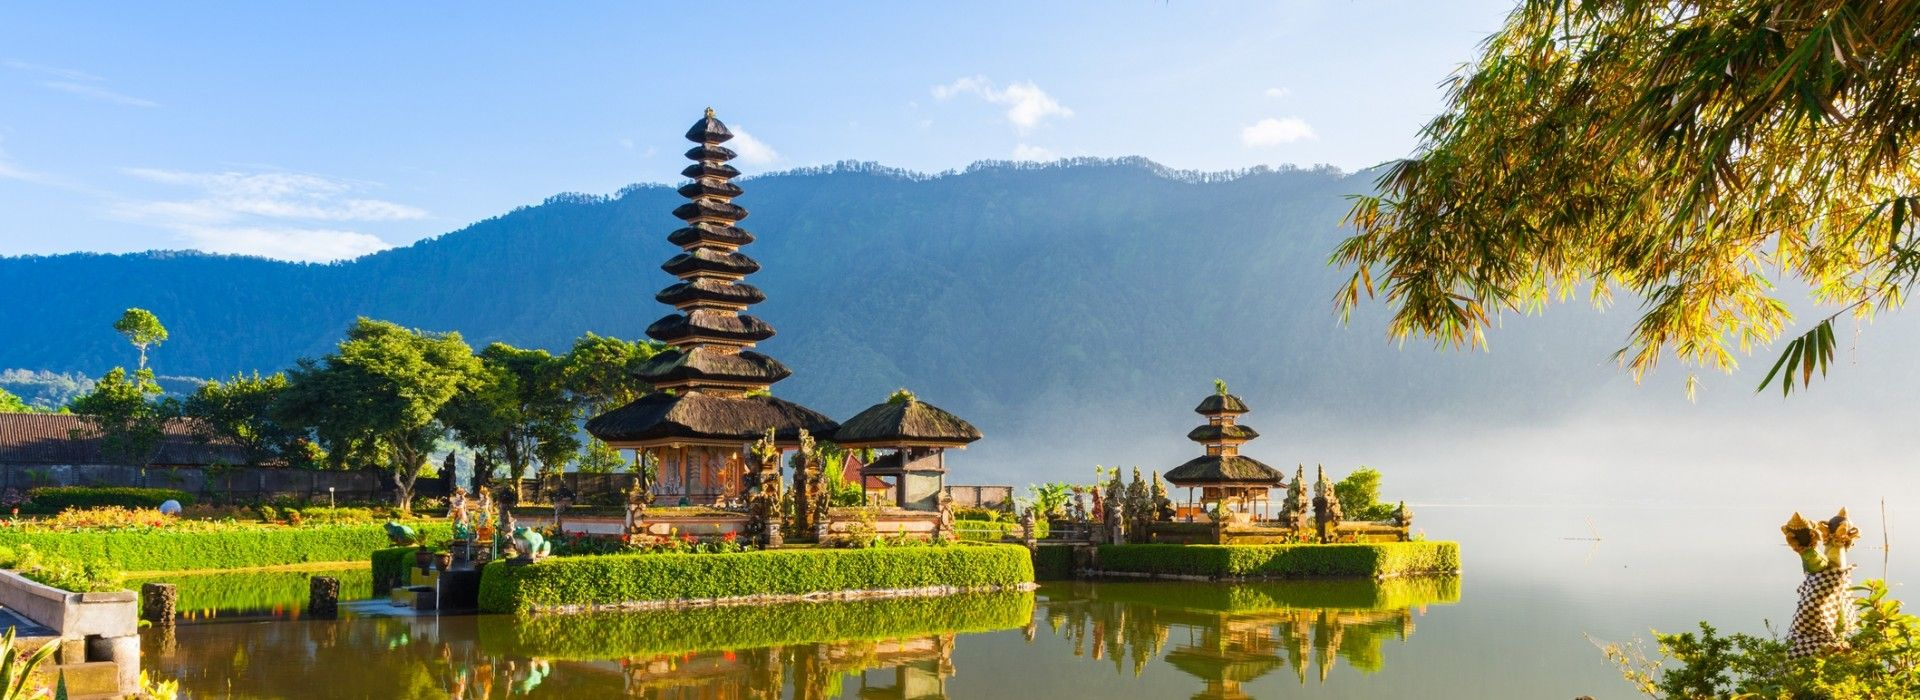 Cultural, religious and historic sites Tours in Bali